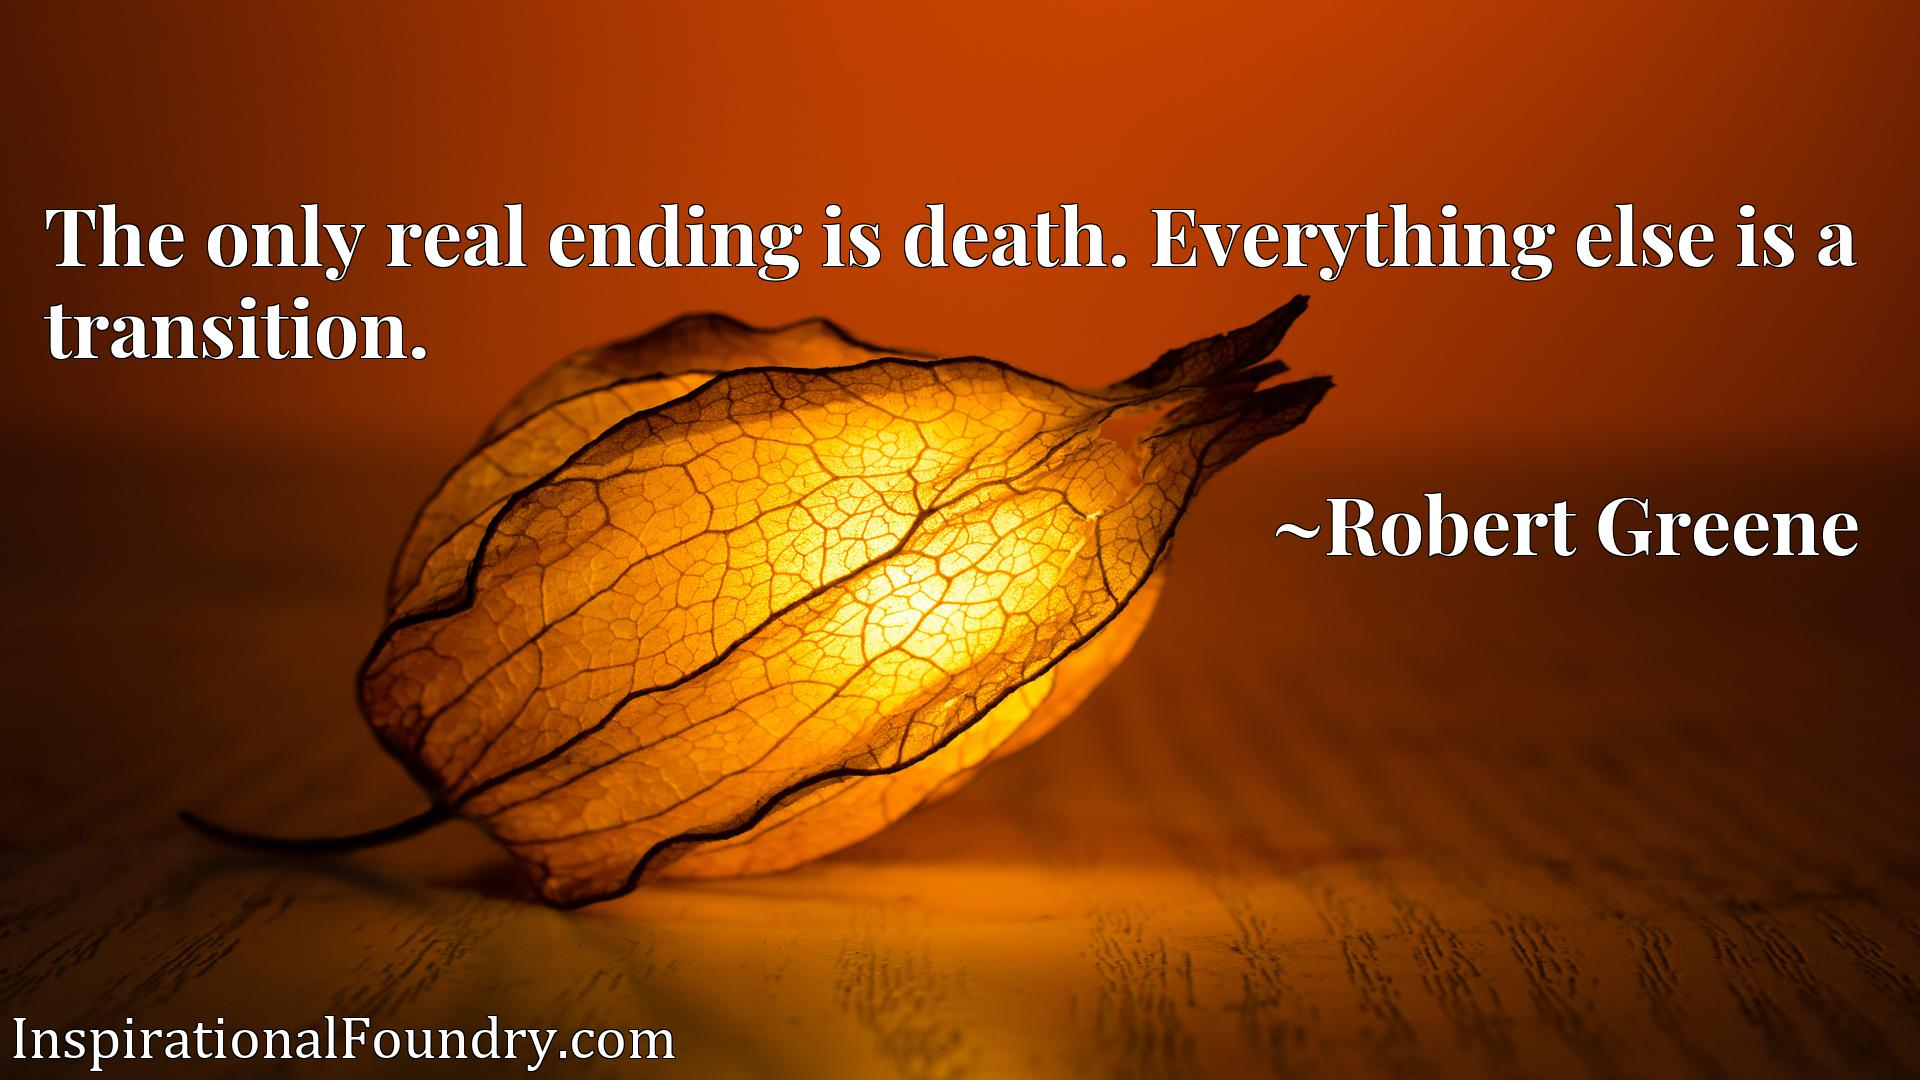 The only real ending is death. Everything else is a transition.